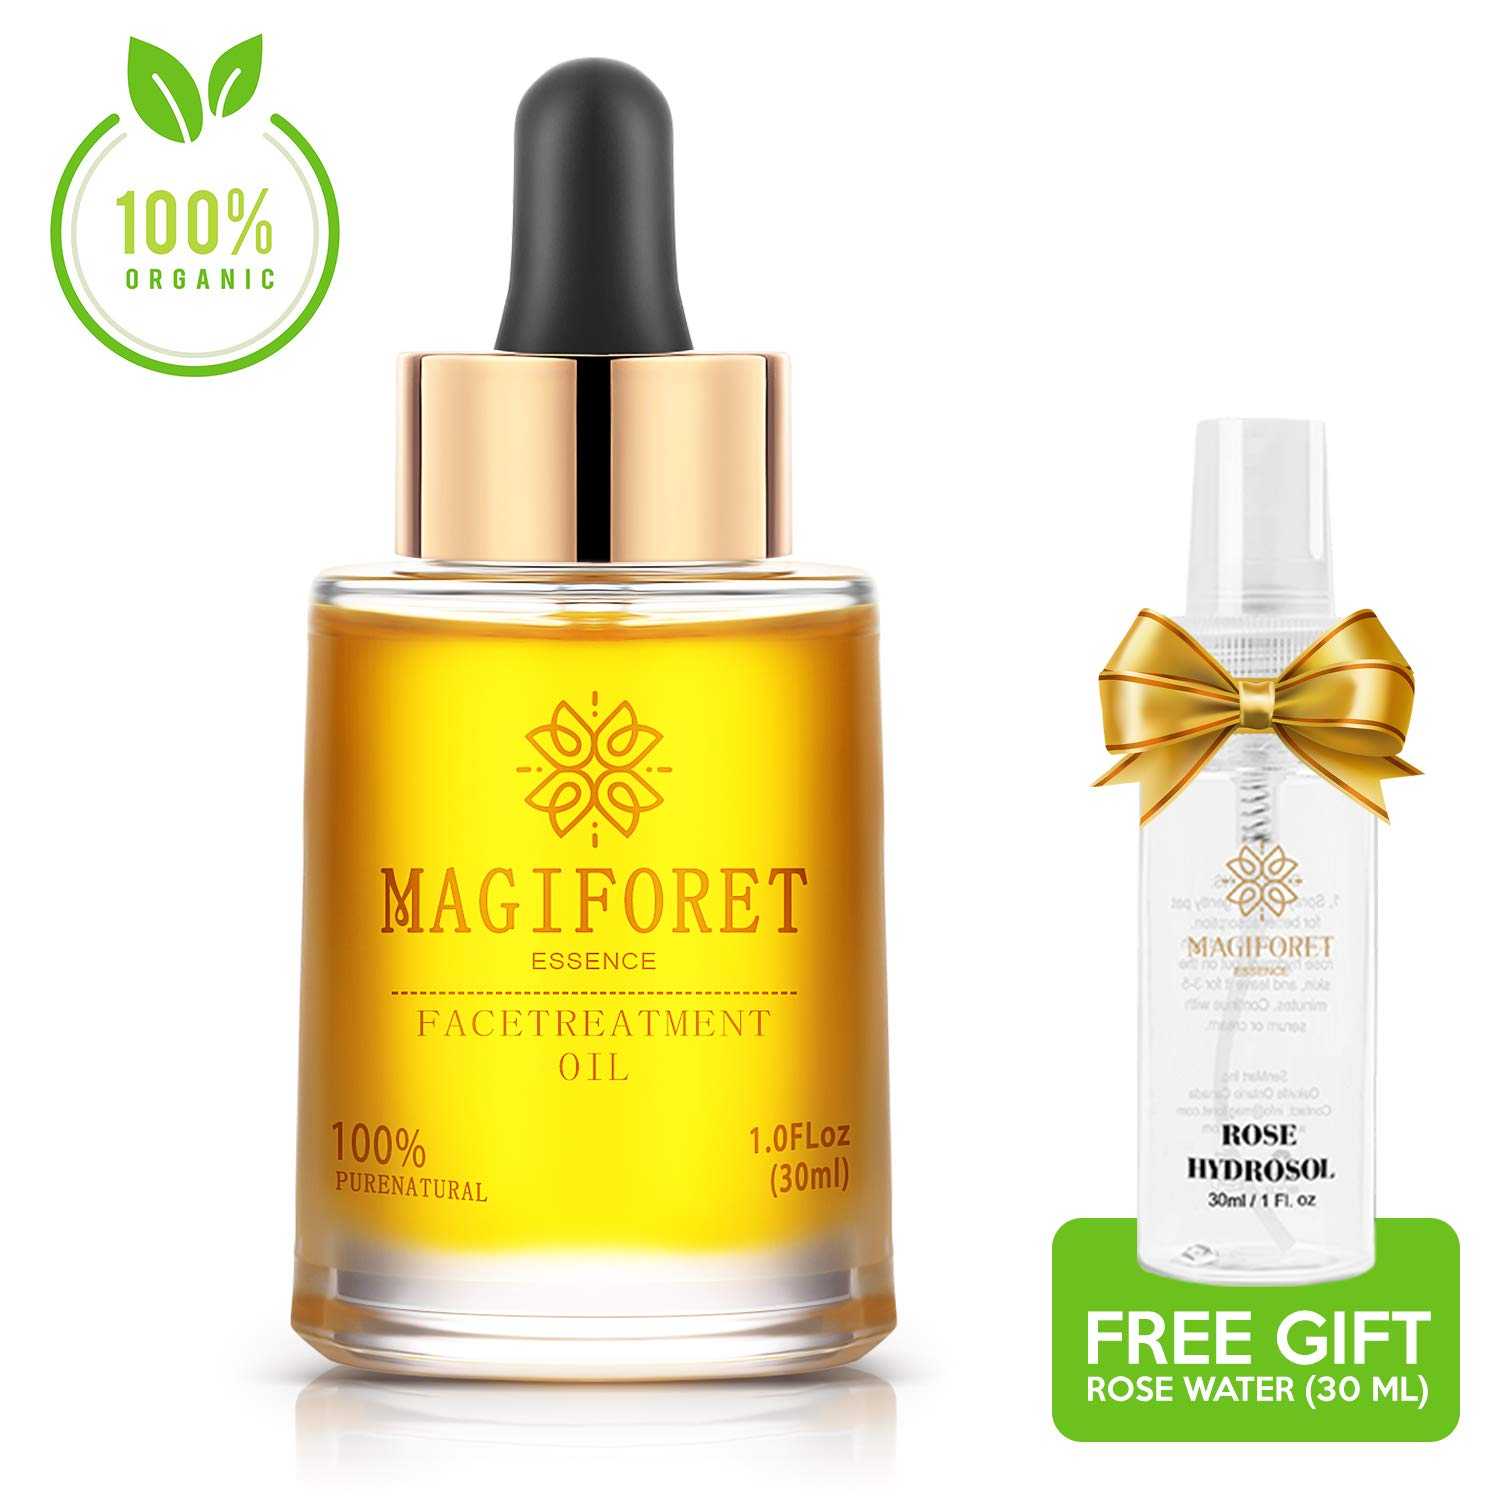 Face Oil, MagiForet Natural Facial Oil osmanthus 1.0 oz, Organic face serum, Vegan Anti Aging Moisturizer for unisex, safe for pregnant and breast feeding women, with Jojoba Oil Argan Oil Rosehip Oil